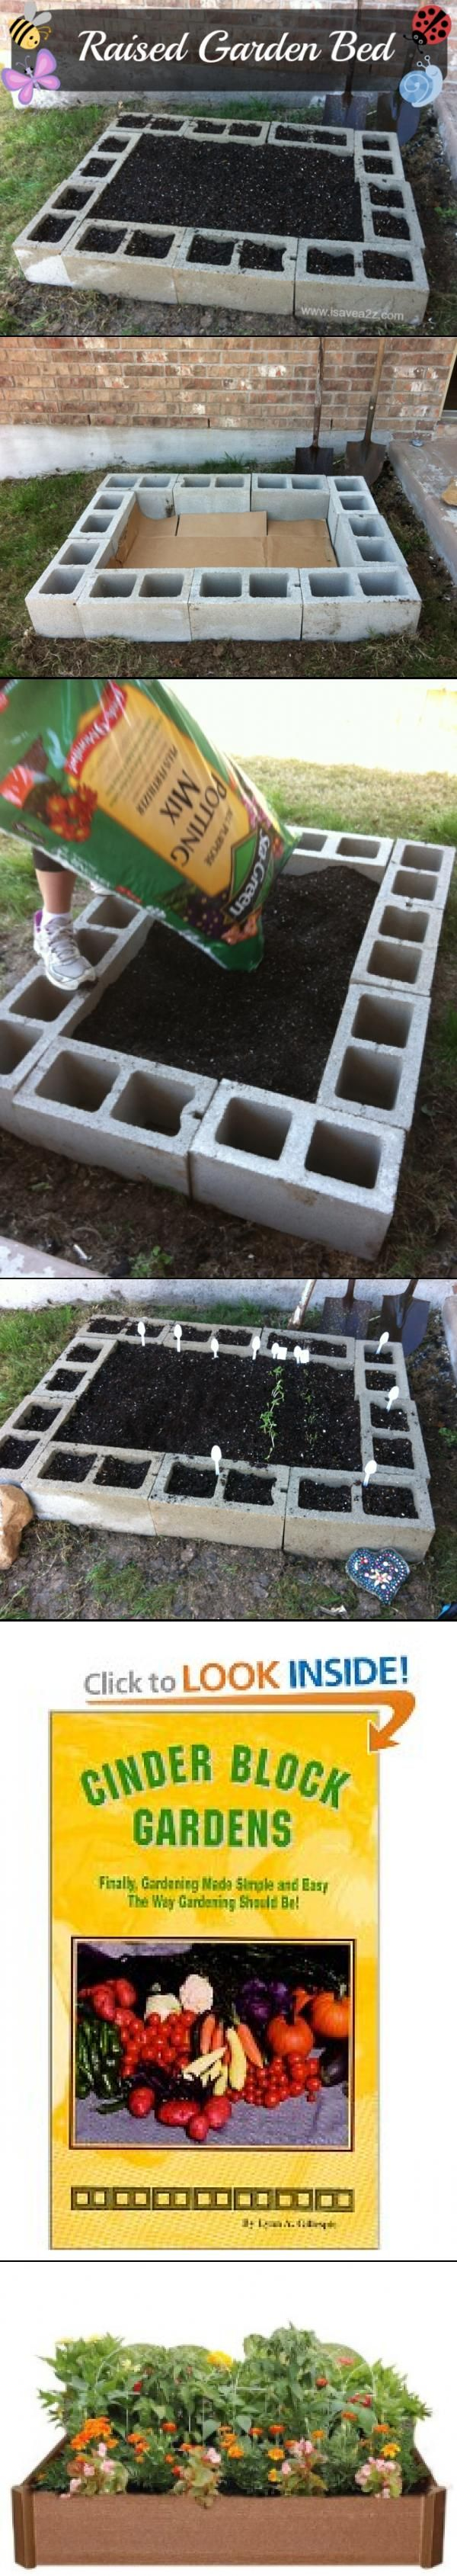 Raised Garden Bed Tutorial. Put the herbs in the small holes of the cinder blocks and your veggies in the center.